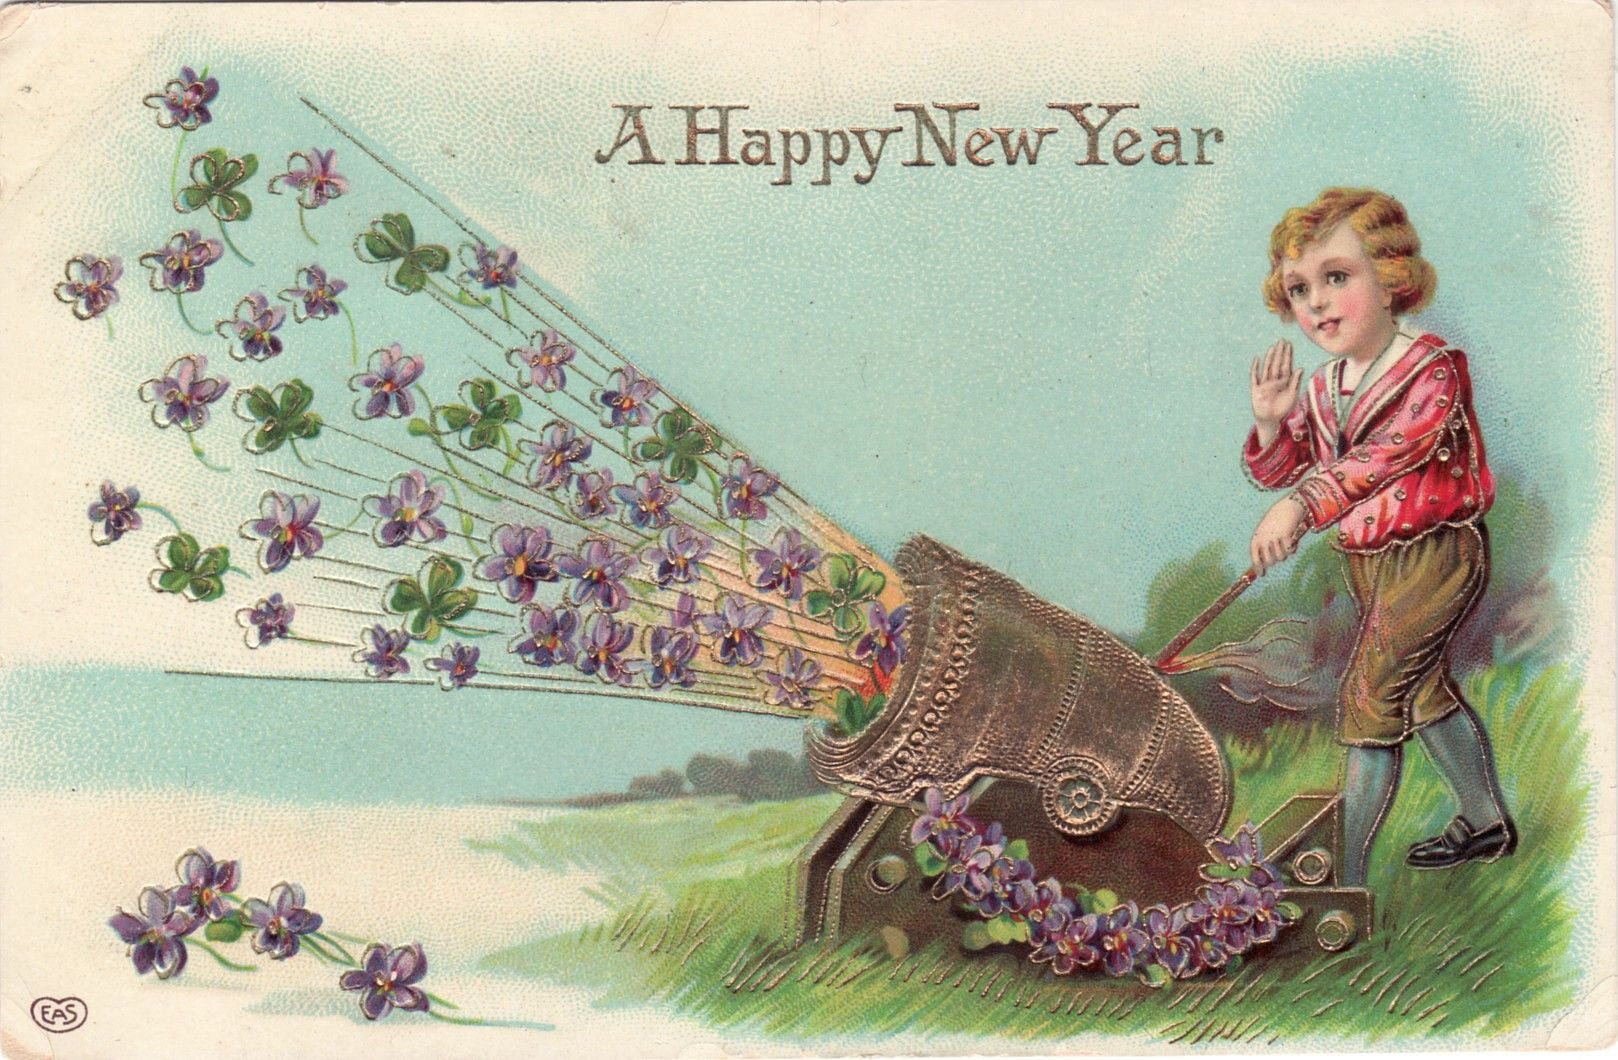 17 Best images about Happy New Year on Pinterest | Jesus photo ...